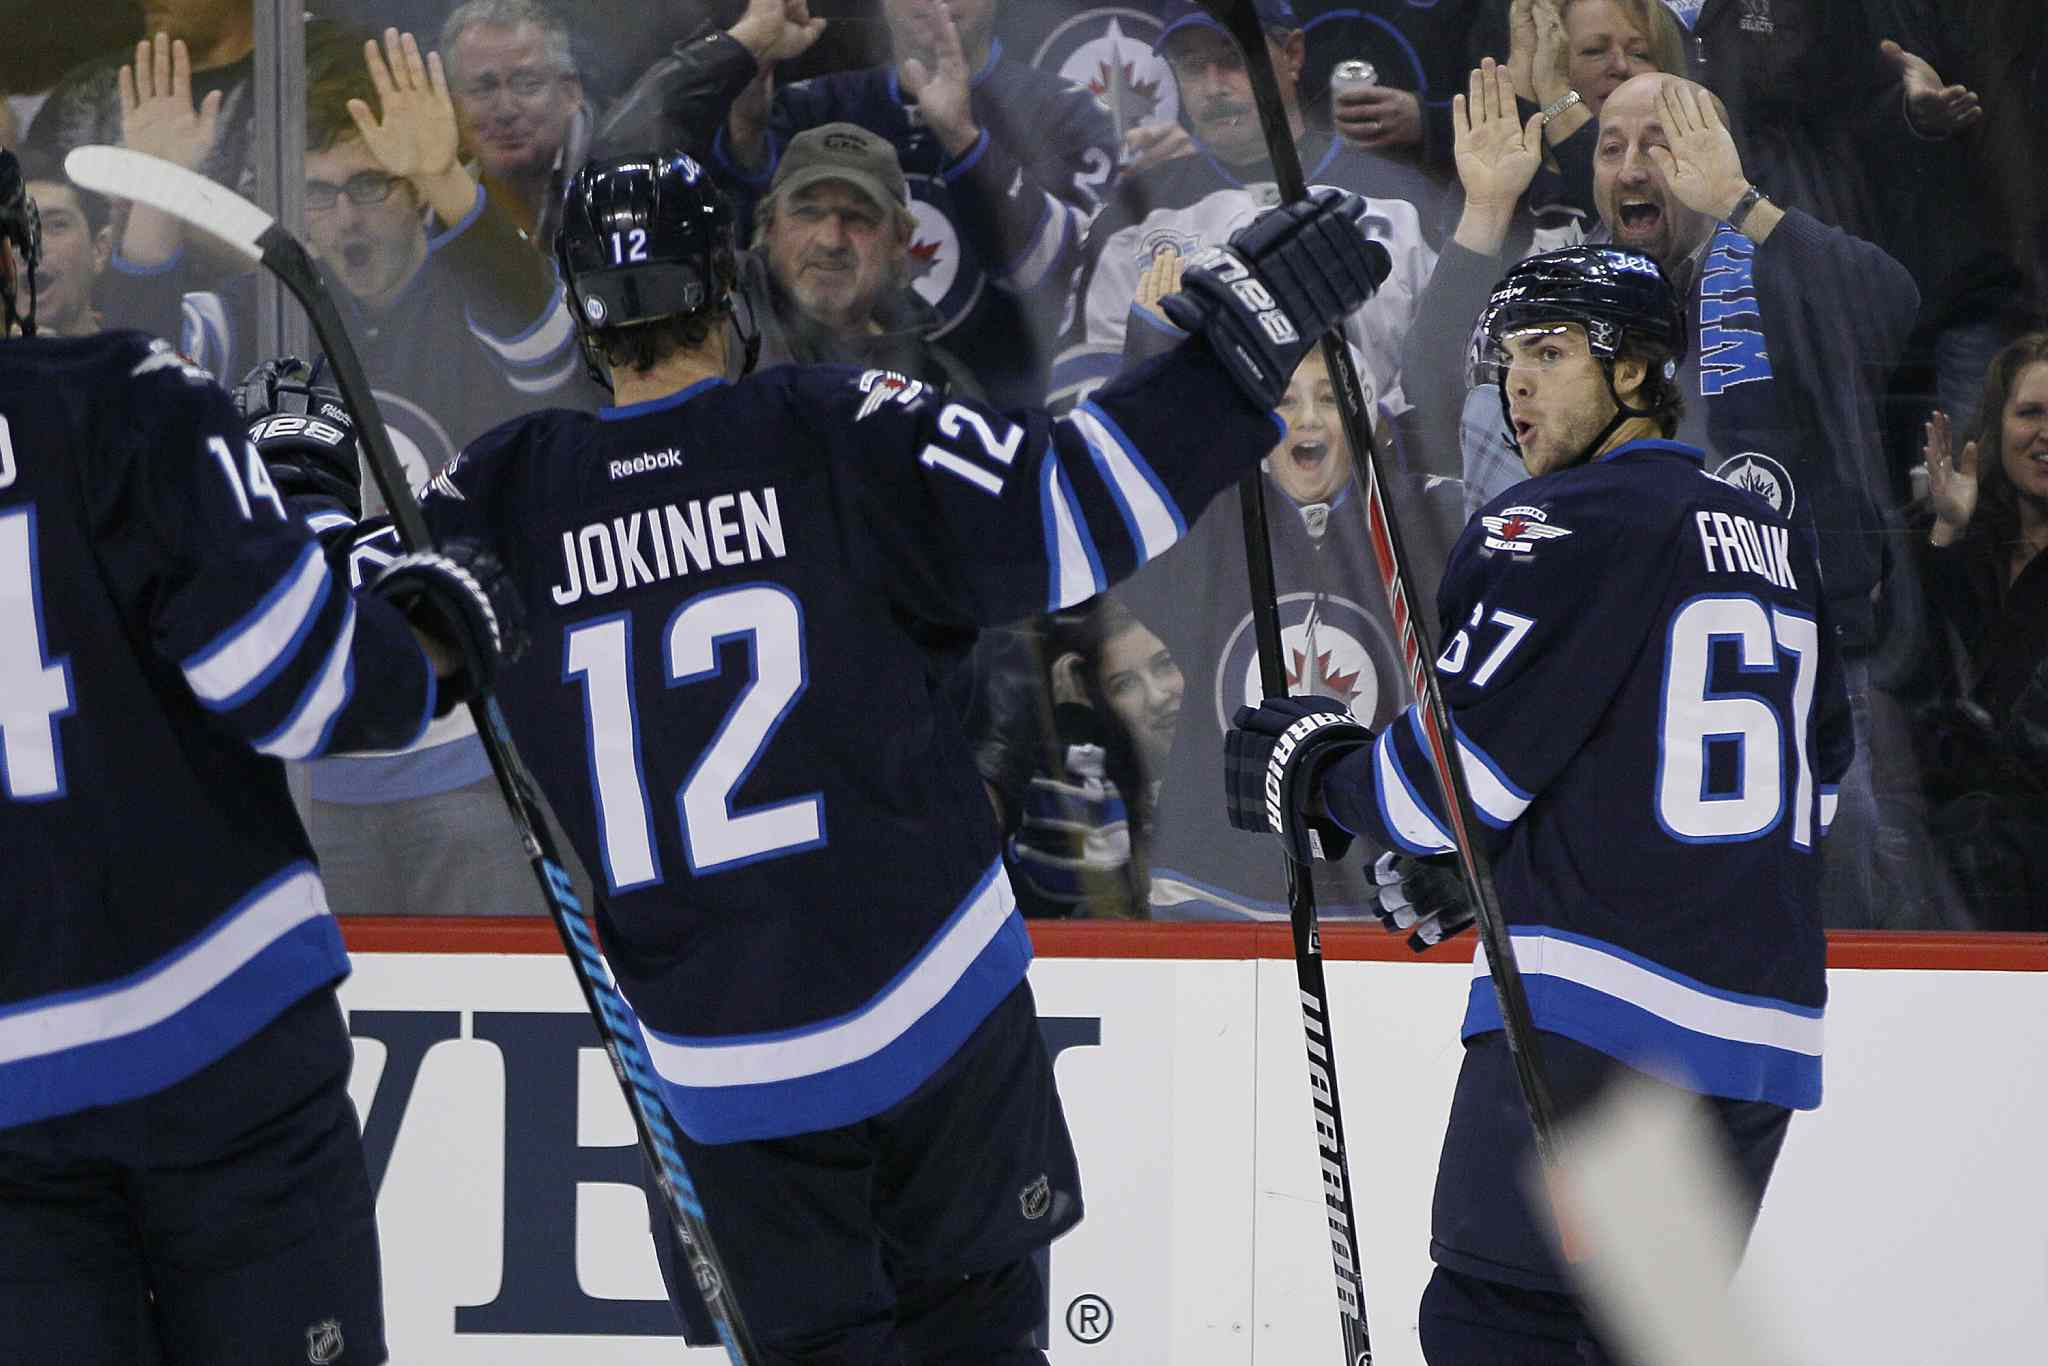 Winnipeg Jets' Michael Frolik (67), Olli Jokinen (12) and Anthony Peluso (14) celebrate Frolik's goal against the Calgary Flames during second period NHL action in Winnipeg on Monday, November 18, 2013.